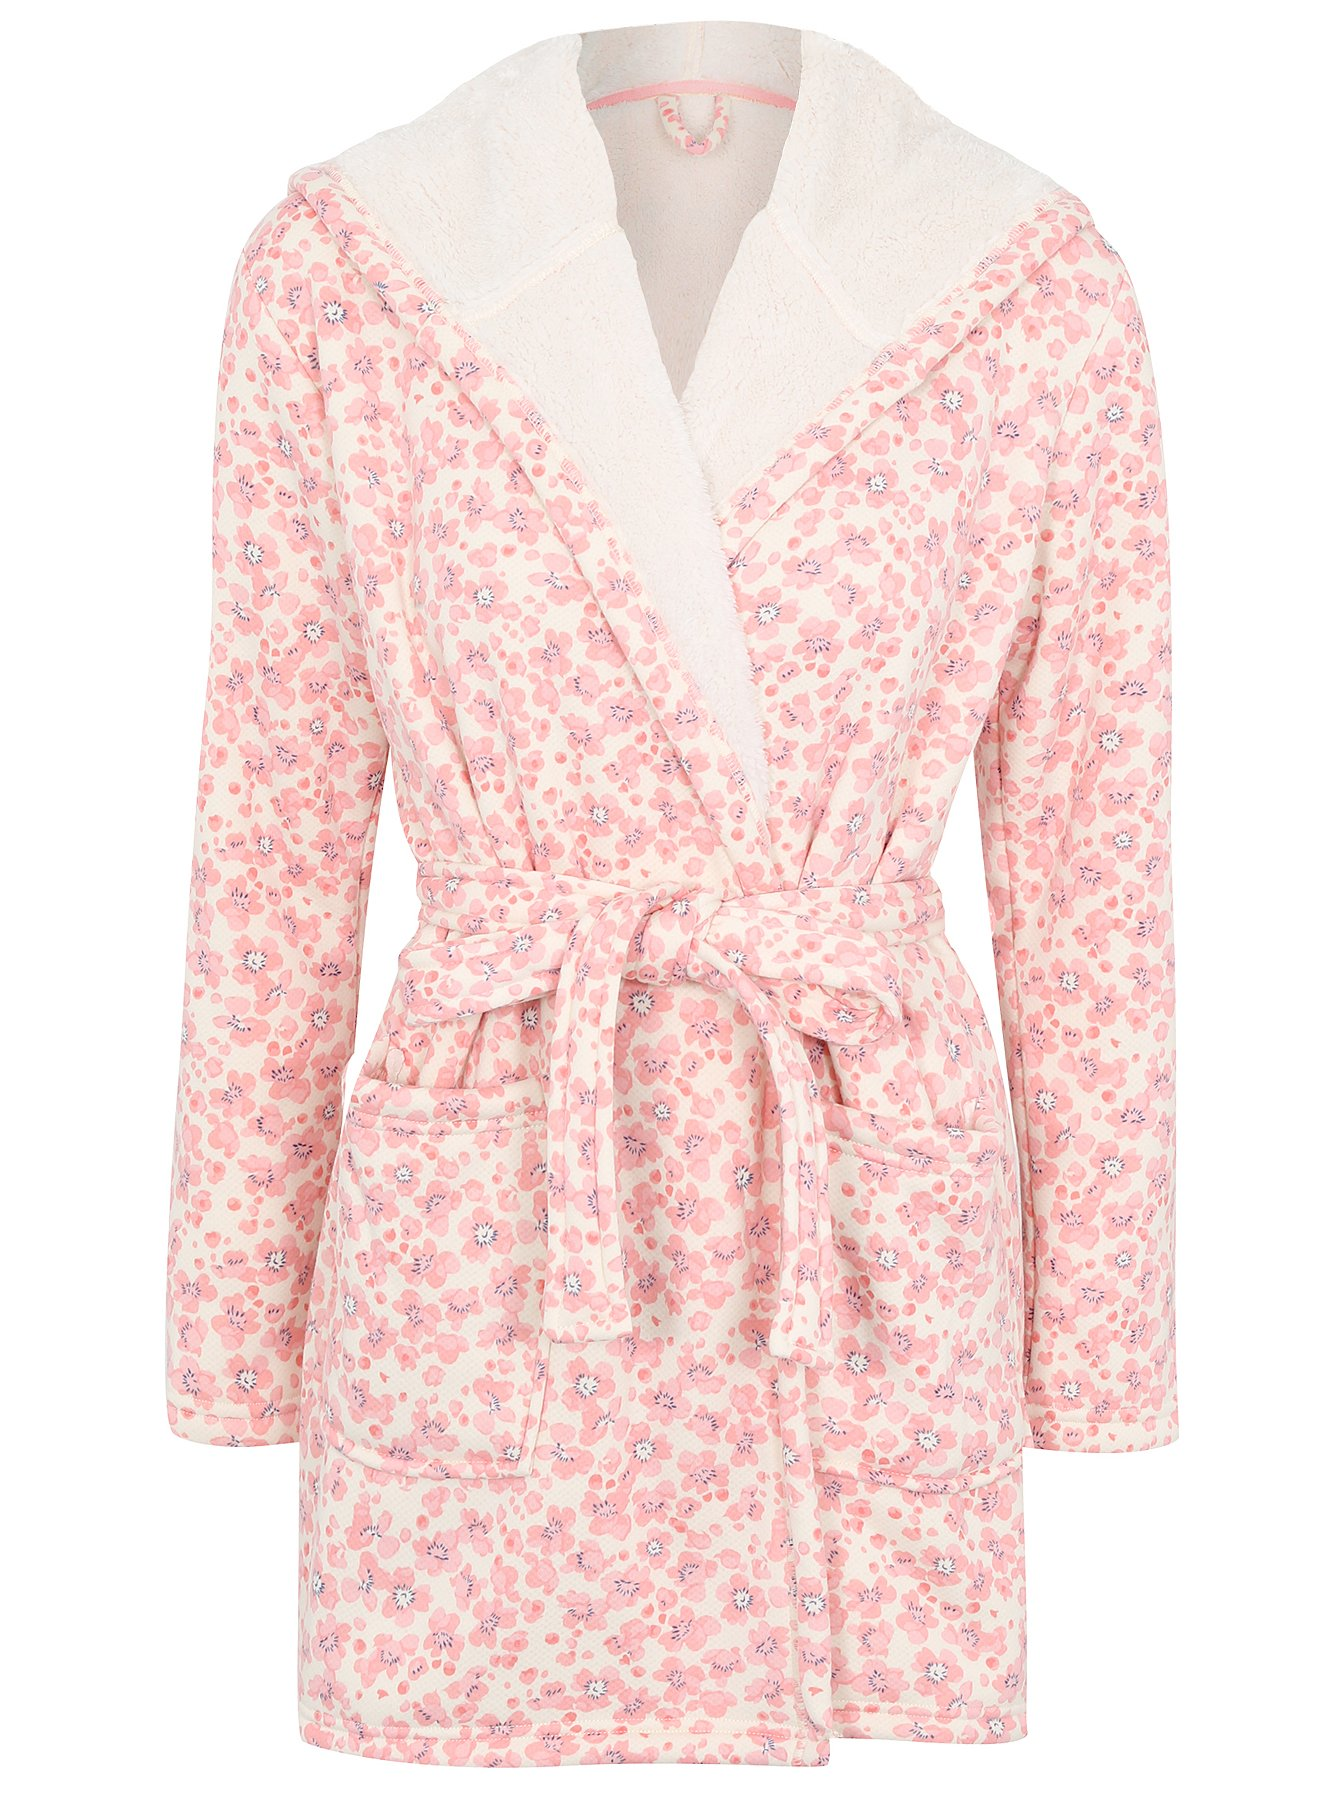 Floral Print Hooded Dressing Gown | Women | George at ASDA